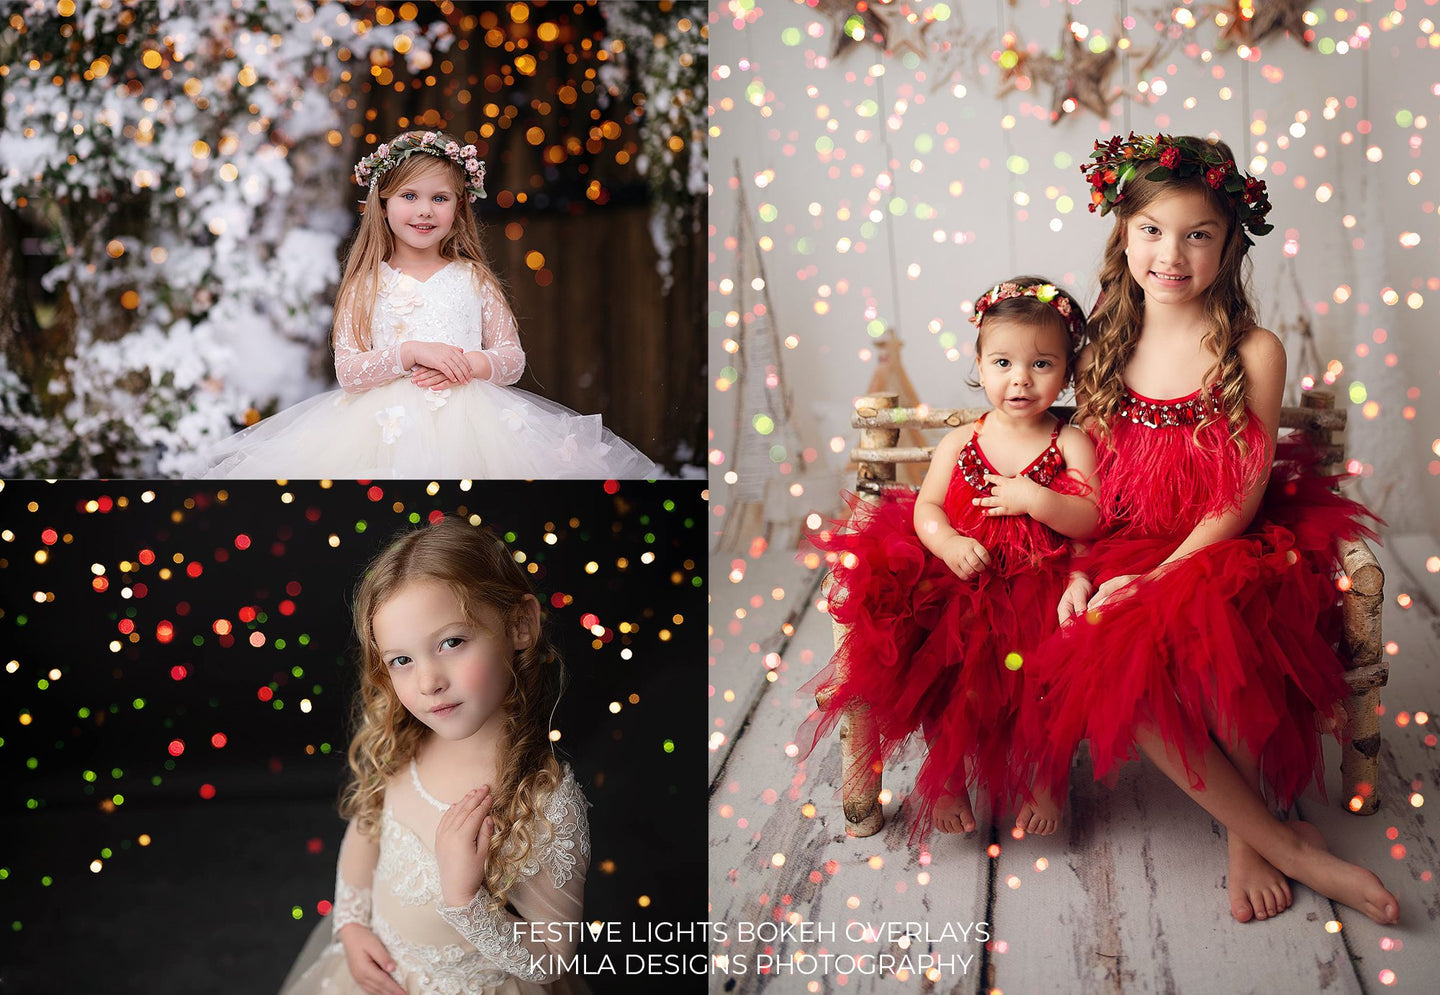 Festive Lights Photo Overlays - Photoshop Overlays, Digital Backgrounds and Lightroom Presets